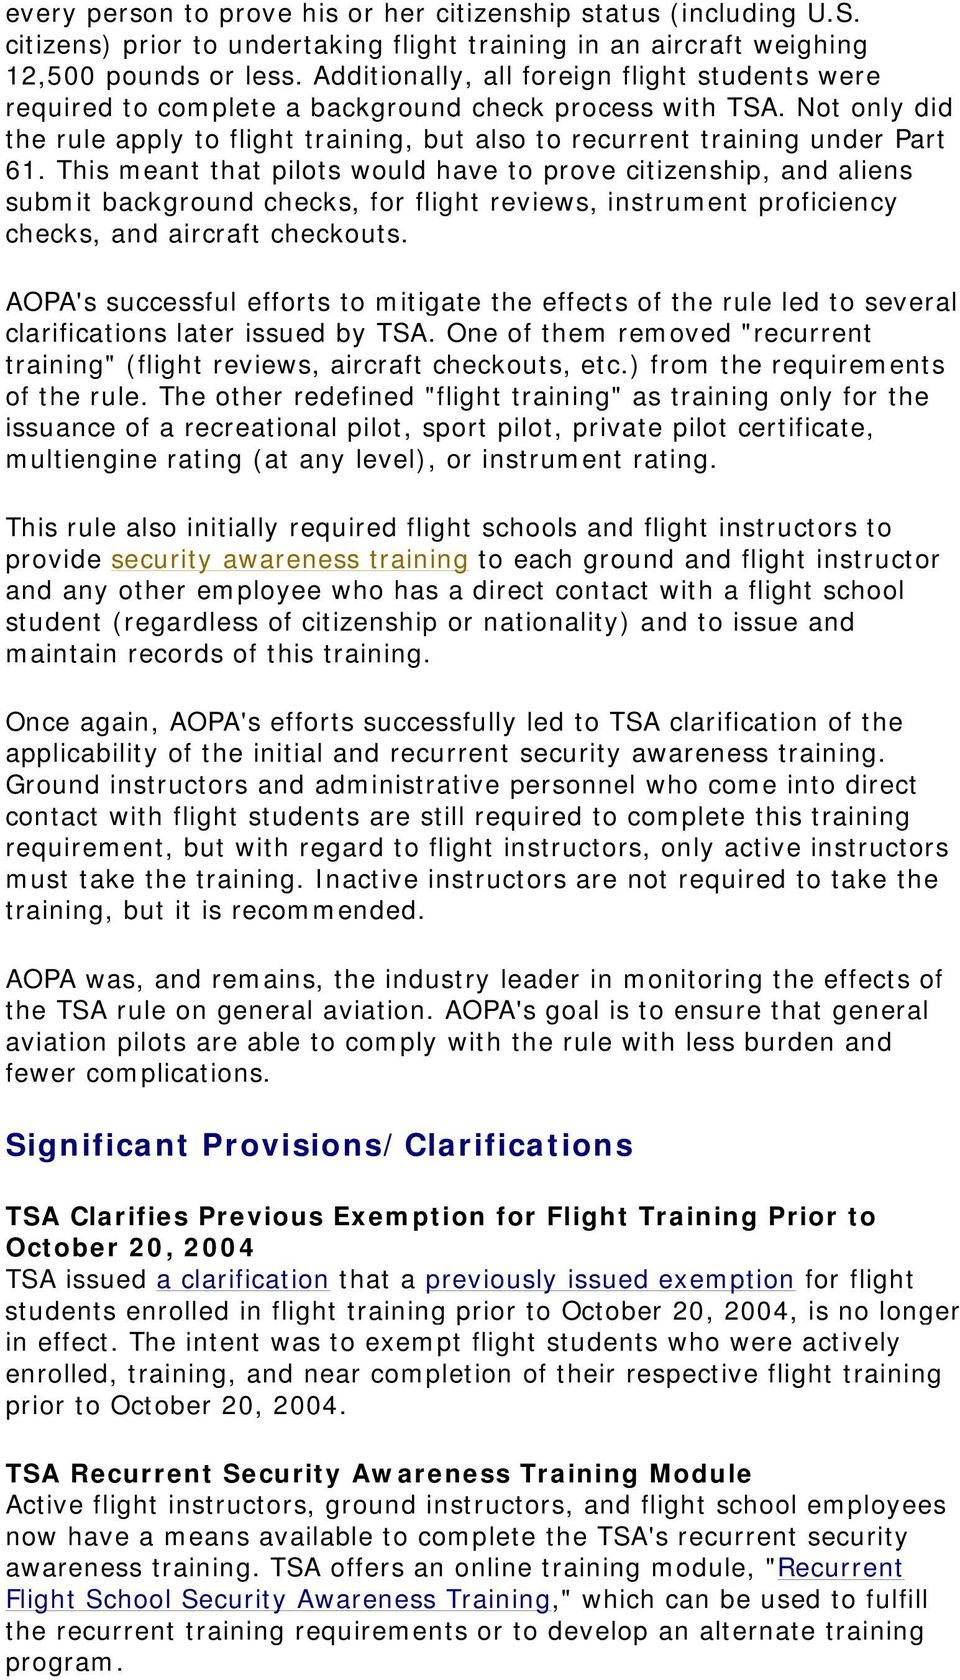 AOPA's Guide to TSA's Alien Flight Training/Citizenship